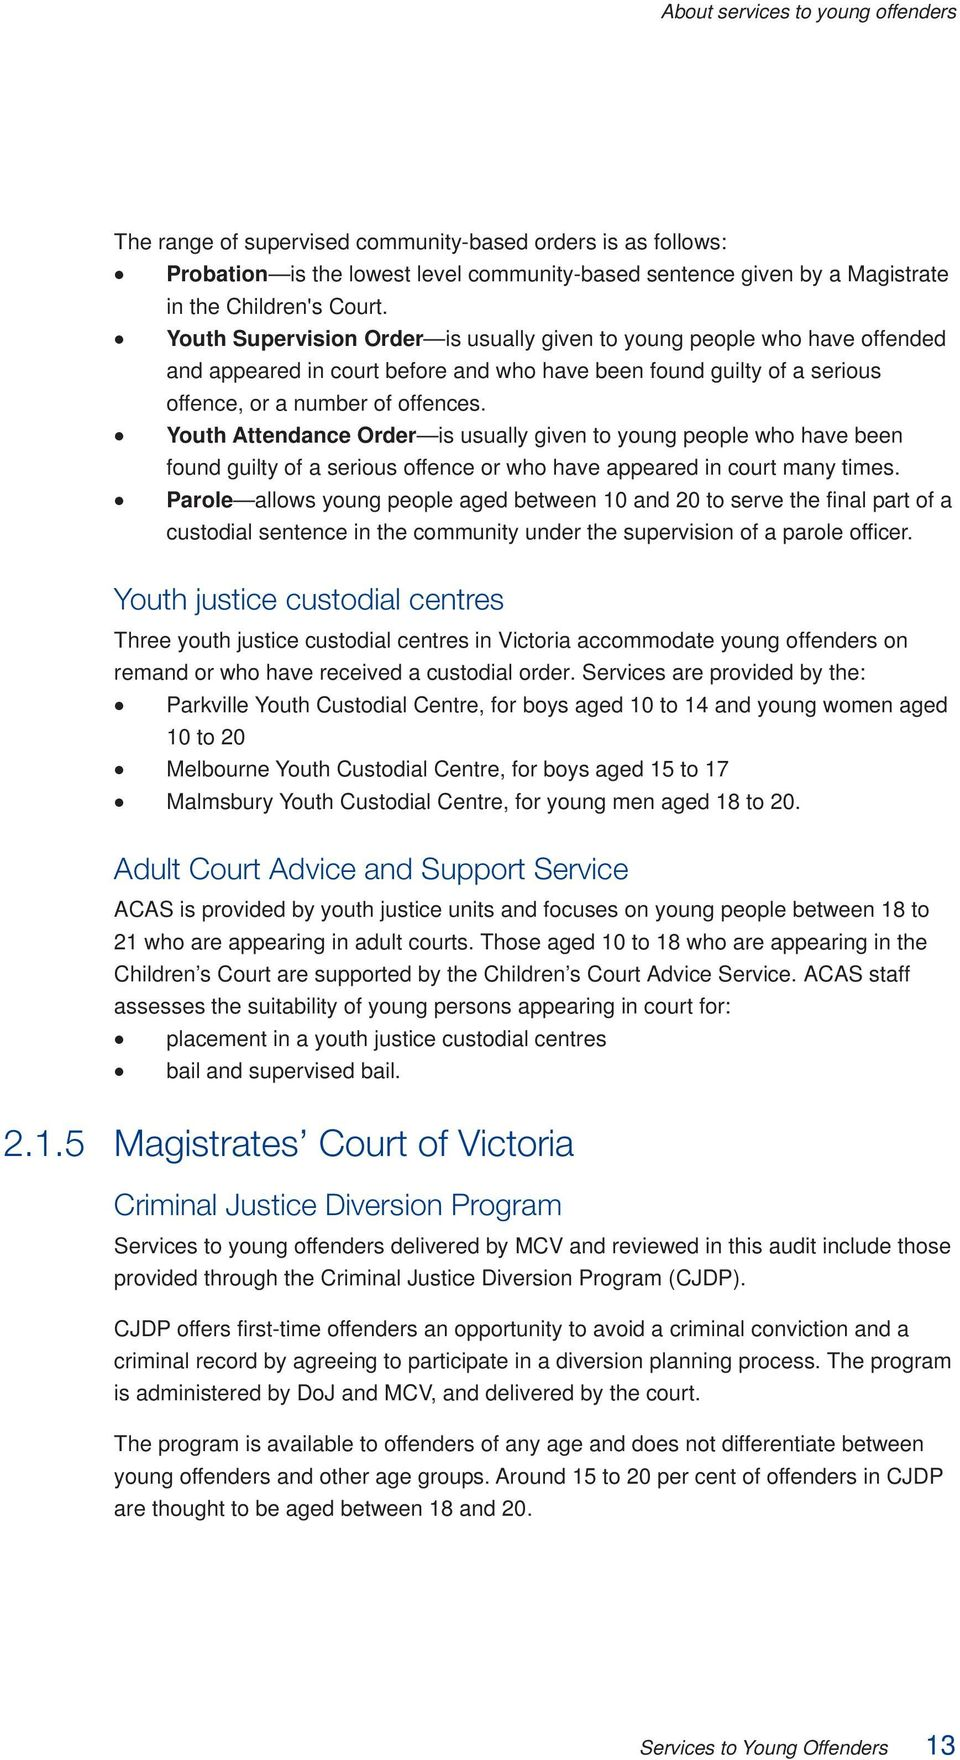 Youth Attendance Order is usually given to young people who have been found guilty of a serious offence or who have appeared in court many times.